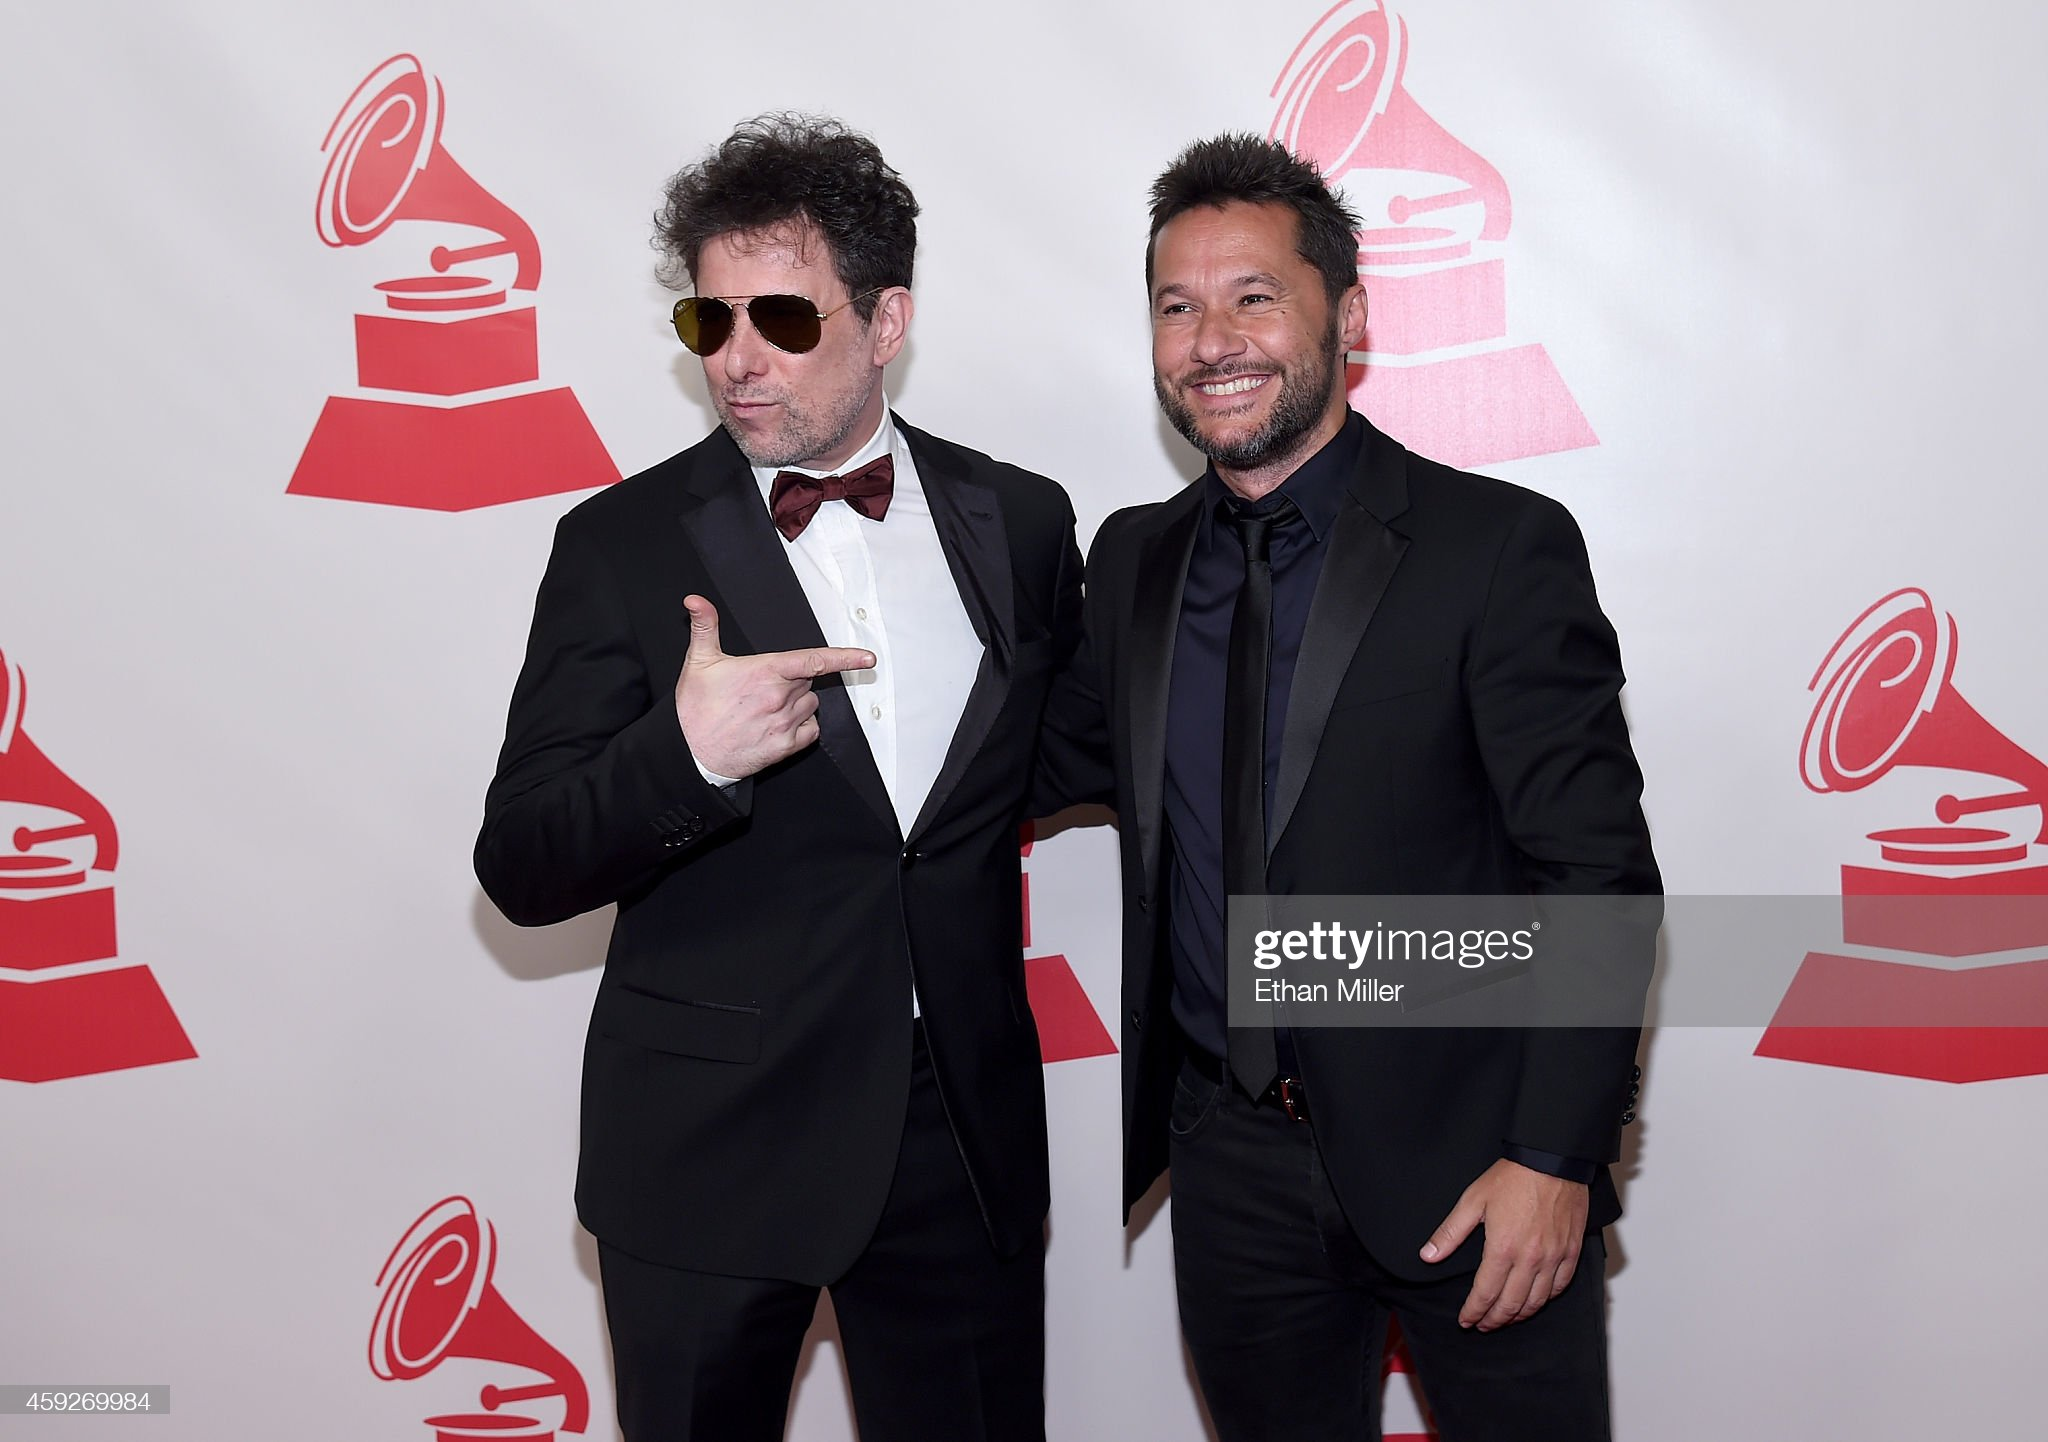 ¿Cuánto mide Andrés Calamaro? - Altura Musician-andres-calamaro-and-singer-diego-torres-attend-the-2014-of-picture-id459269984?s=2048x2048